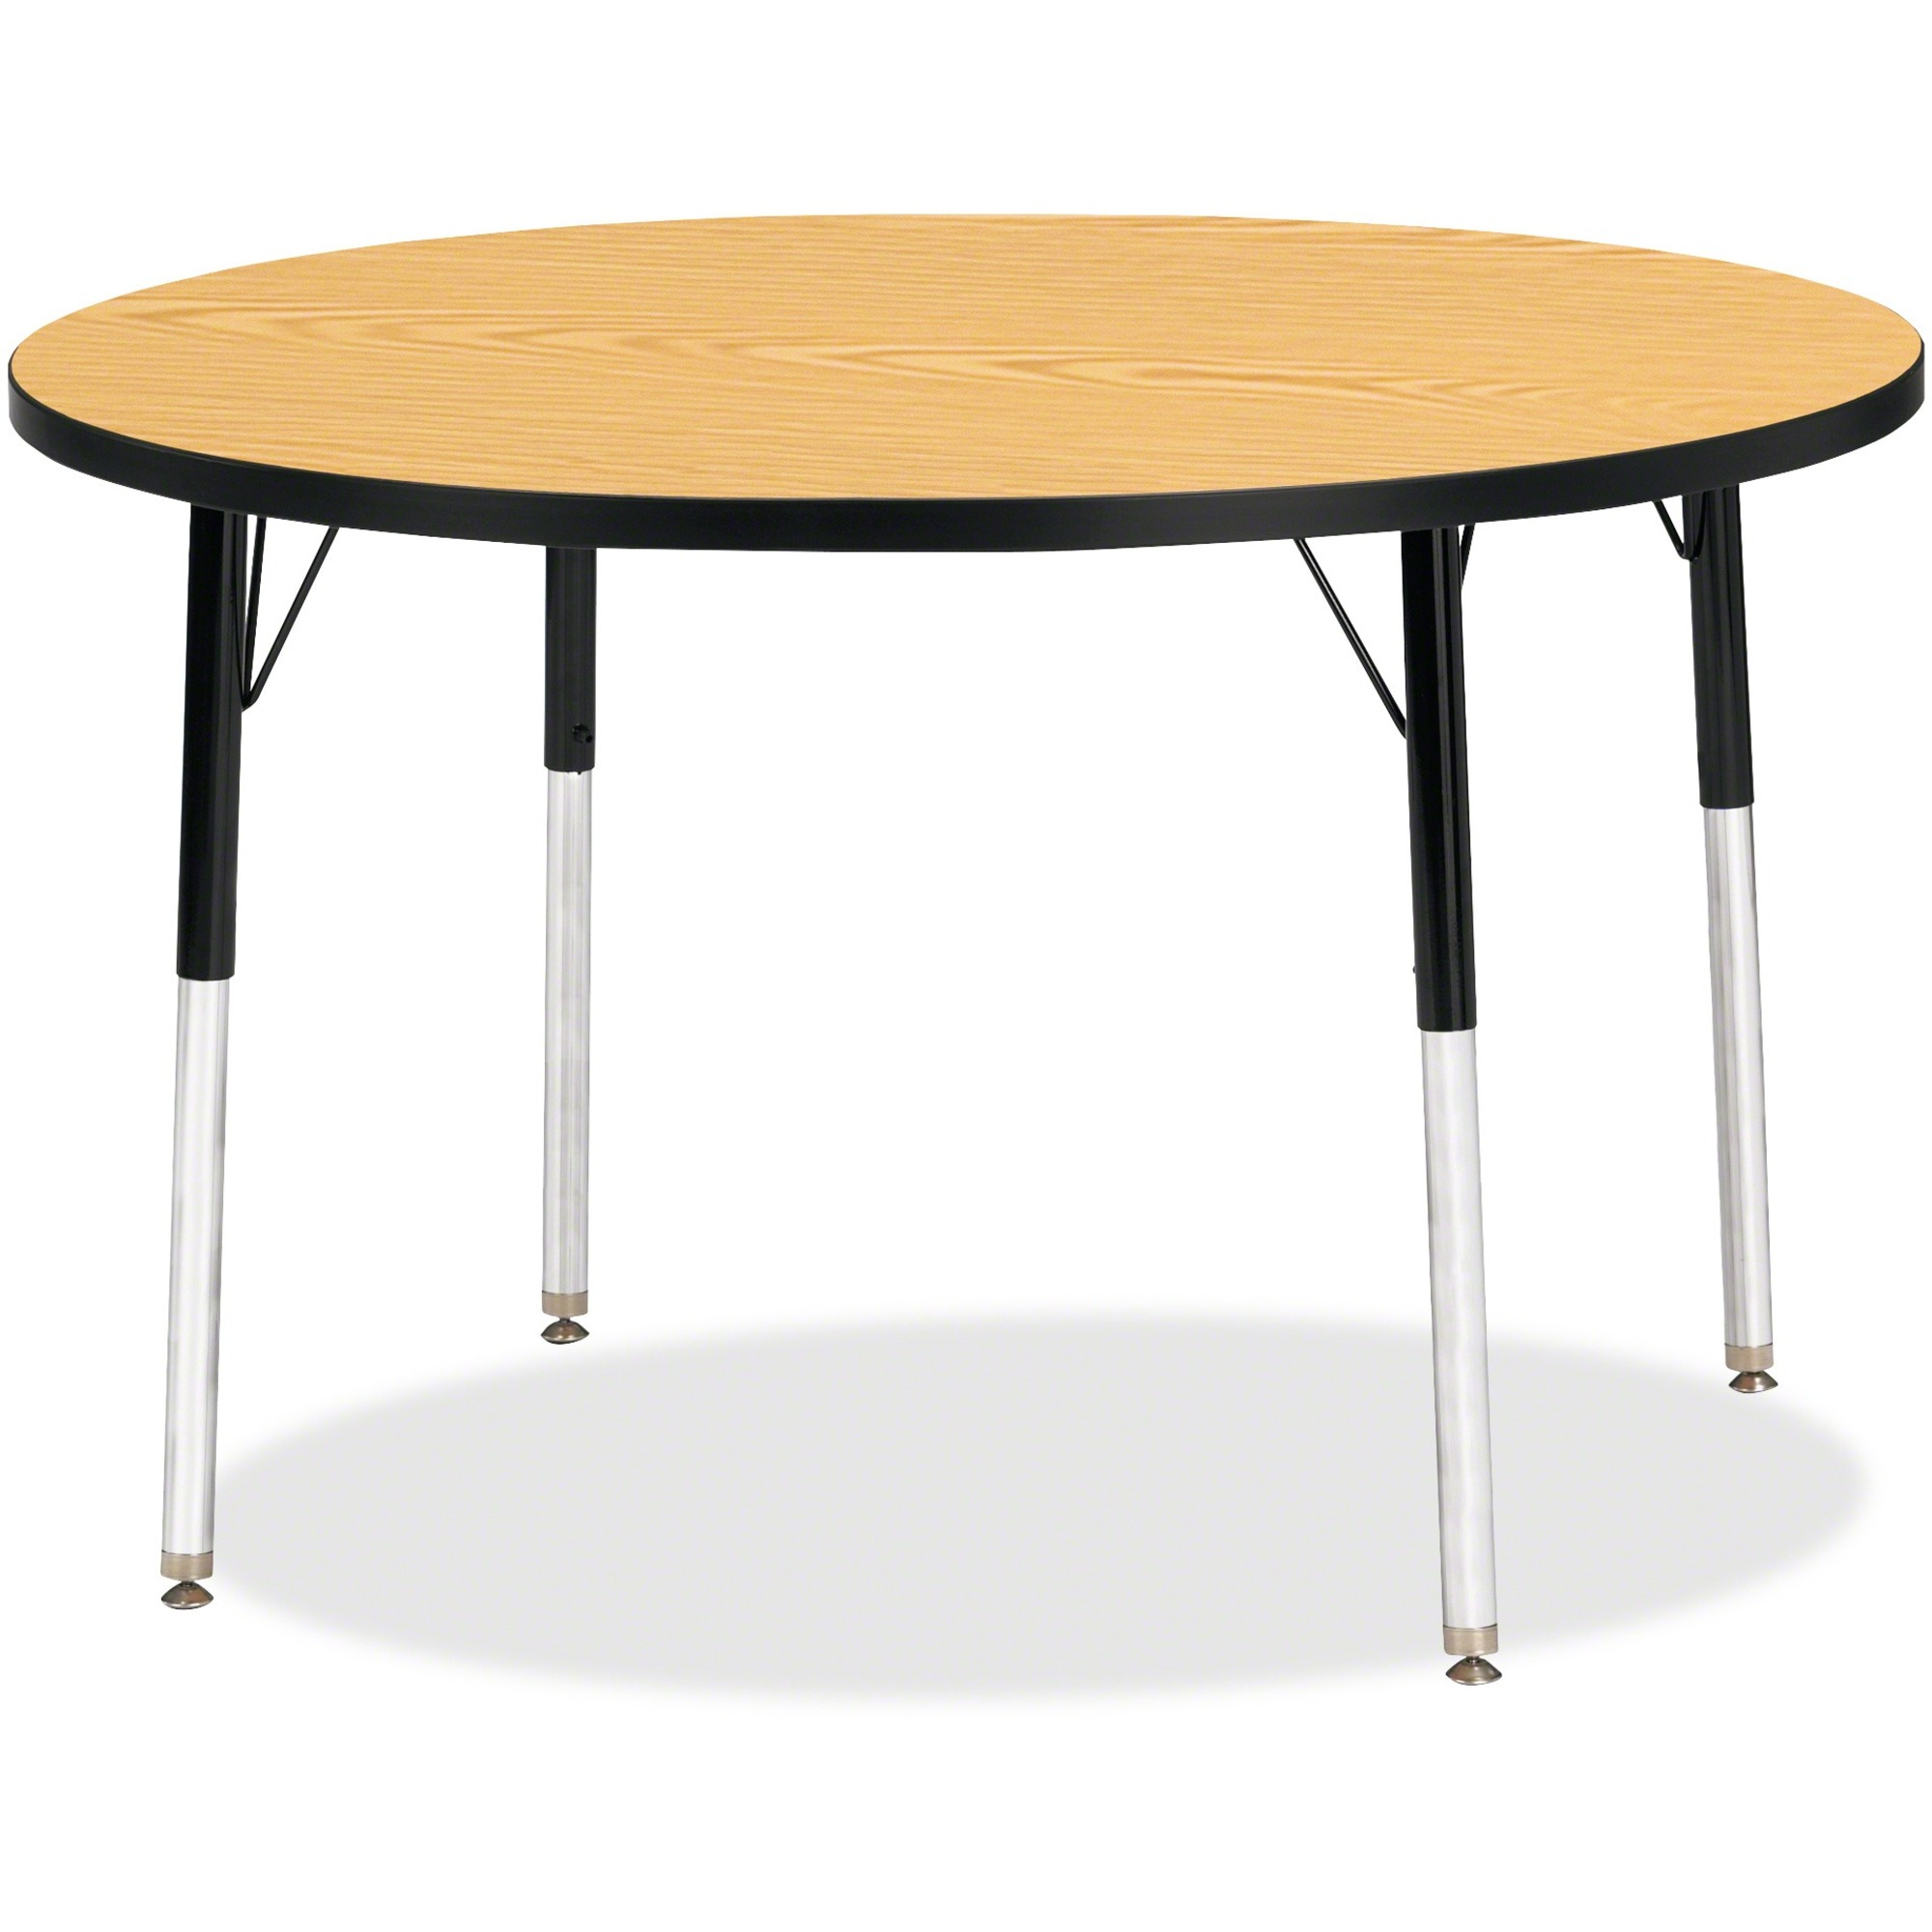 Berries Adult Height Color Top Round Table